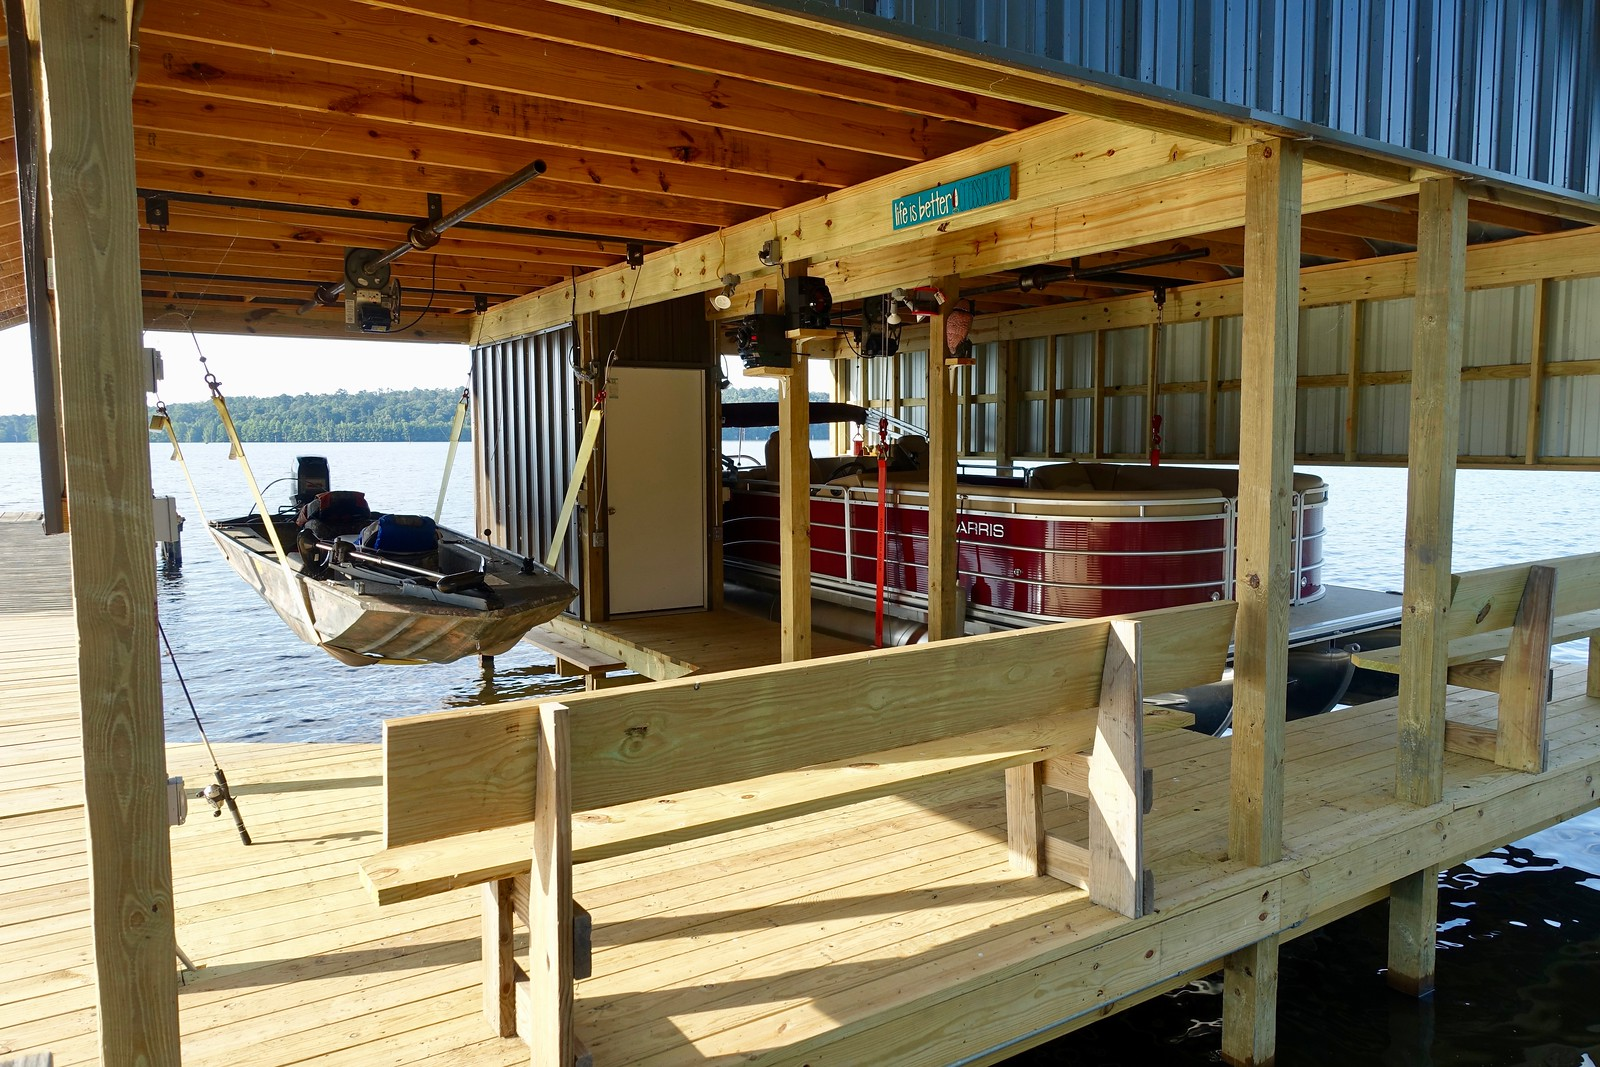 New boat house at Mike & Zoe's